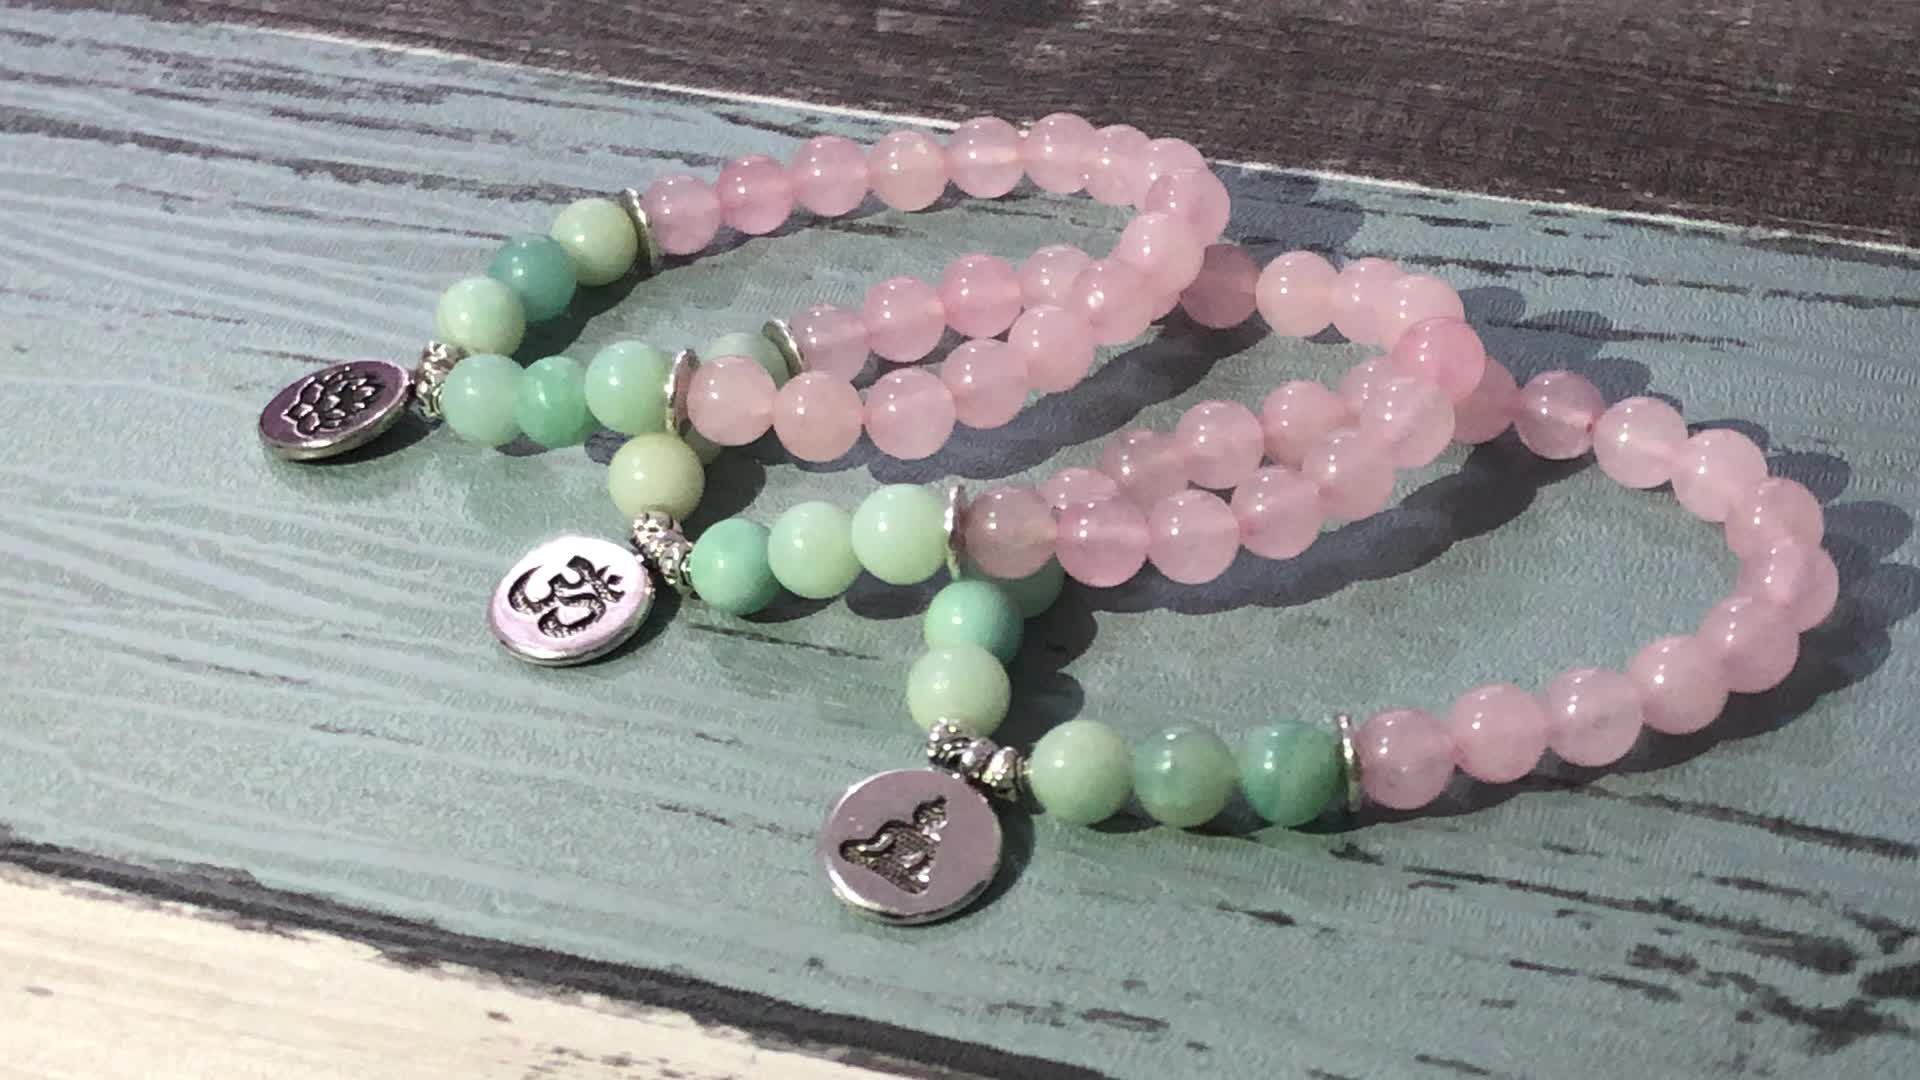 SN1139 Healing Peace Bracelet Yoga Jewelry Silver Lotus Charm Girls Rose Quartz Mala Bracelet